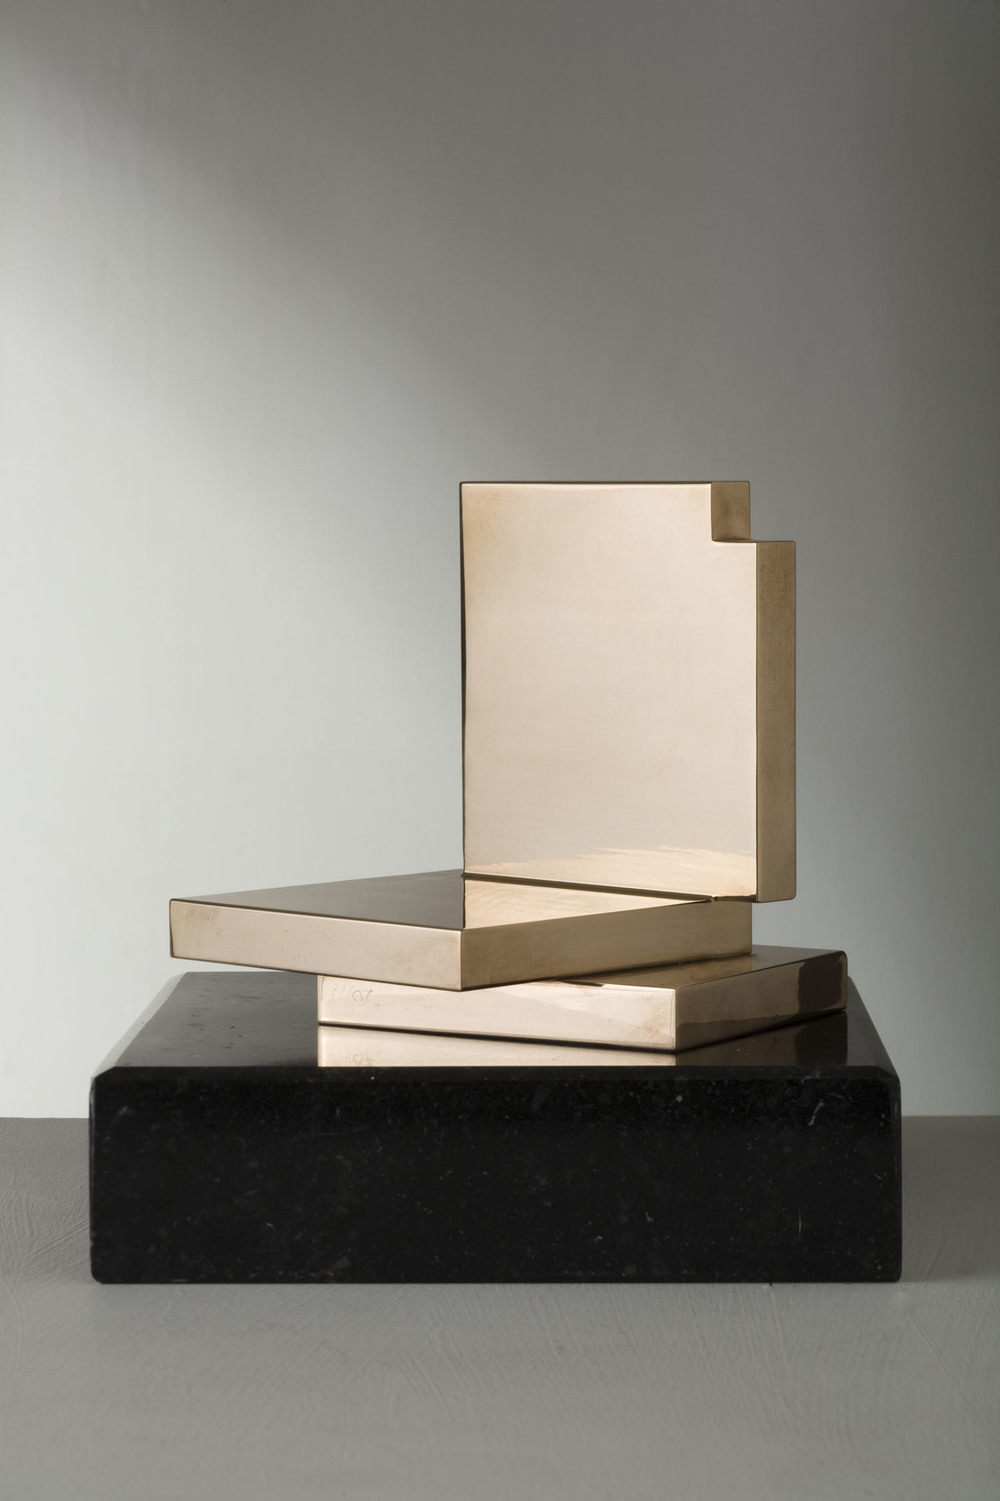 Michael Warren_-_Palcoscenico_polished milled bronze_11.5 x 10.5 x 11.5cm.jpg